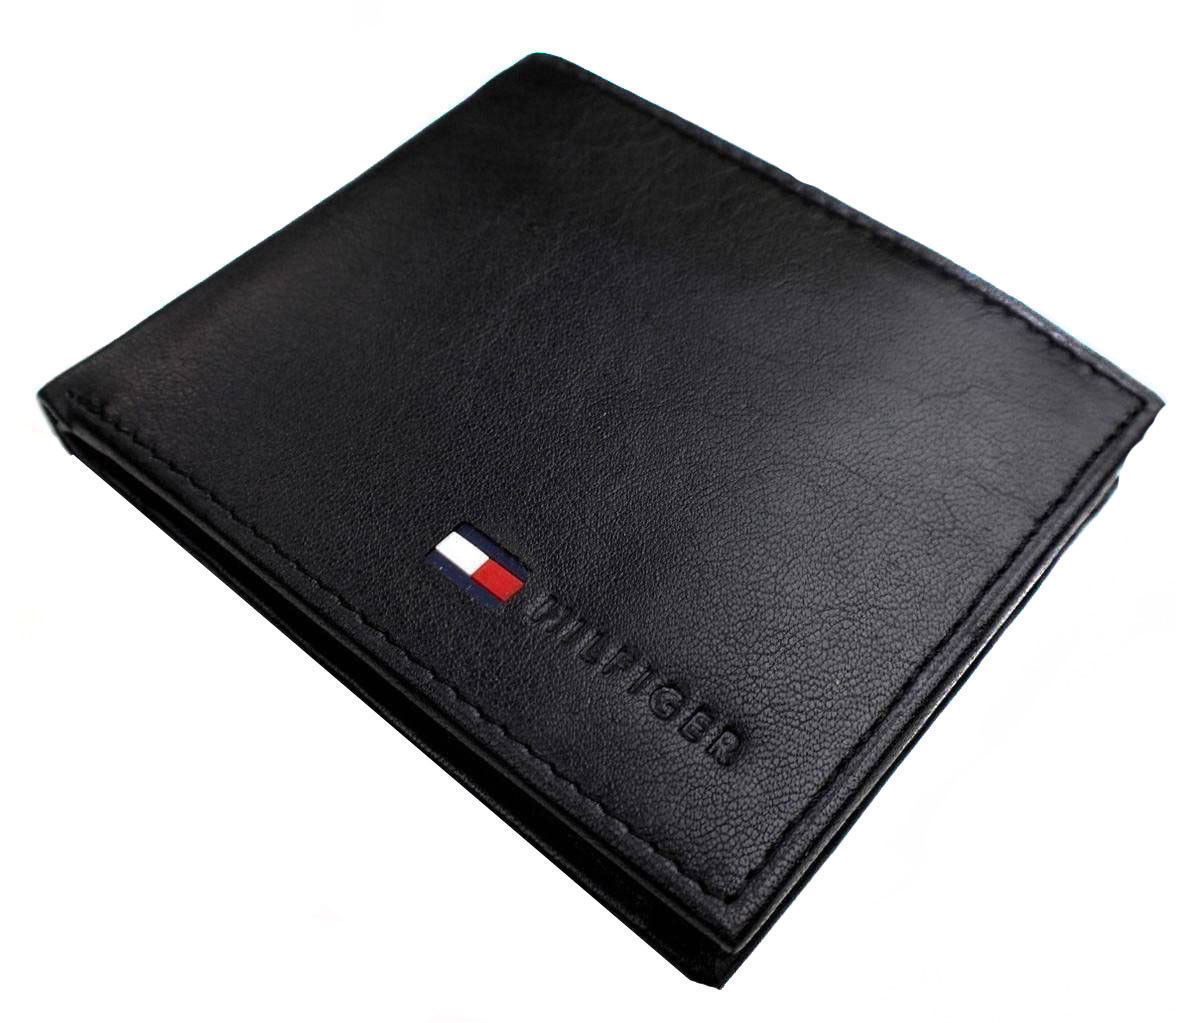 New Tommy Hilfiger Men's Leather Credit Card ID Passcase Wallet Black 31TL22X060 image 2